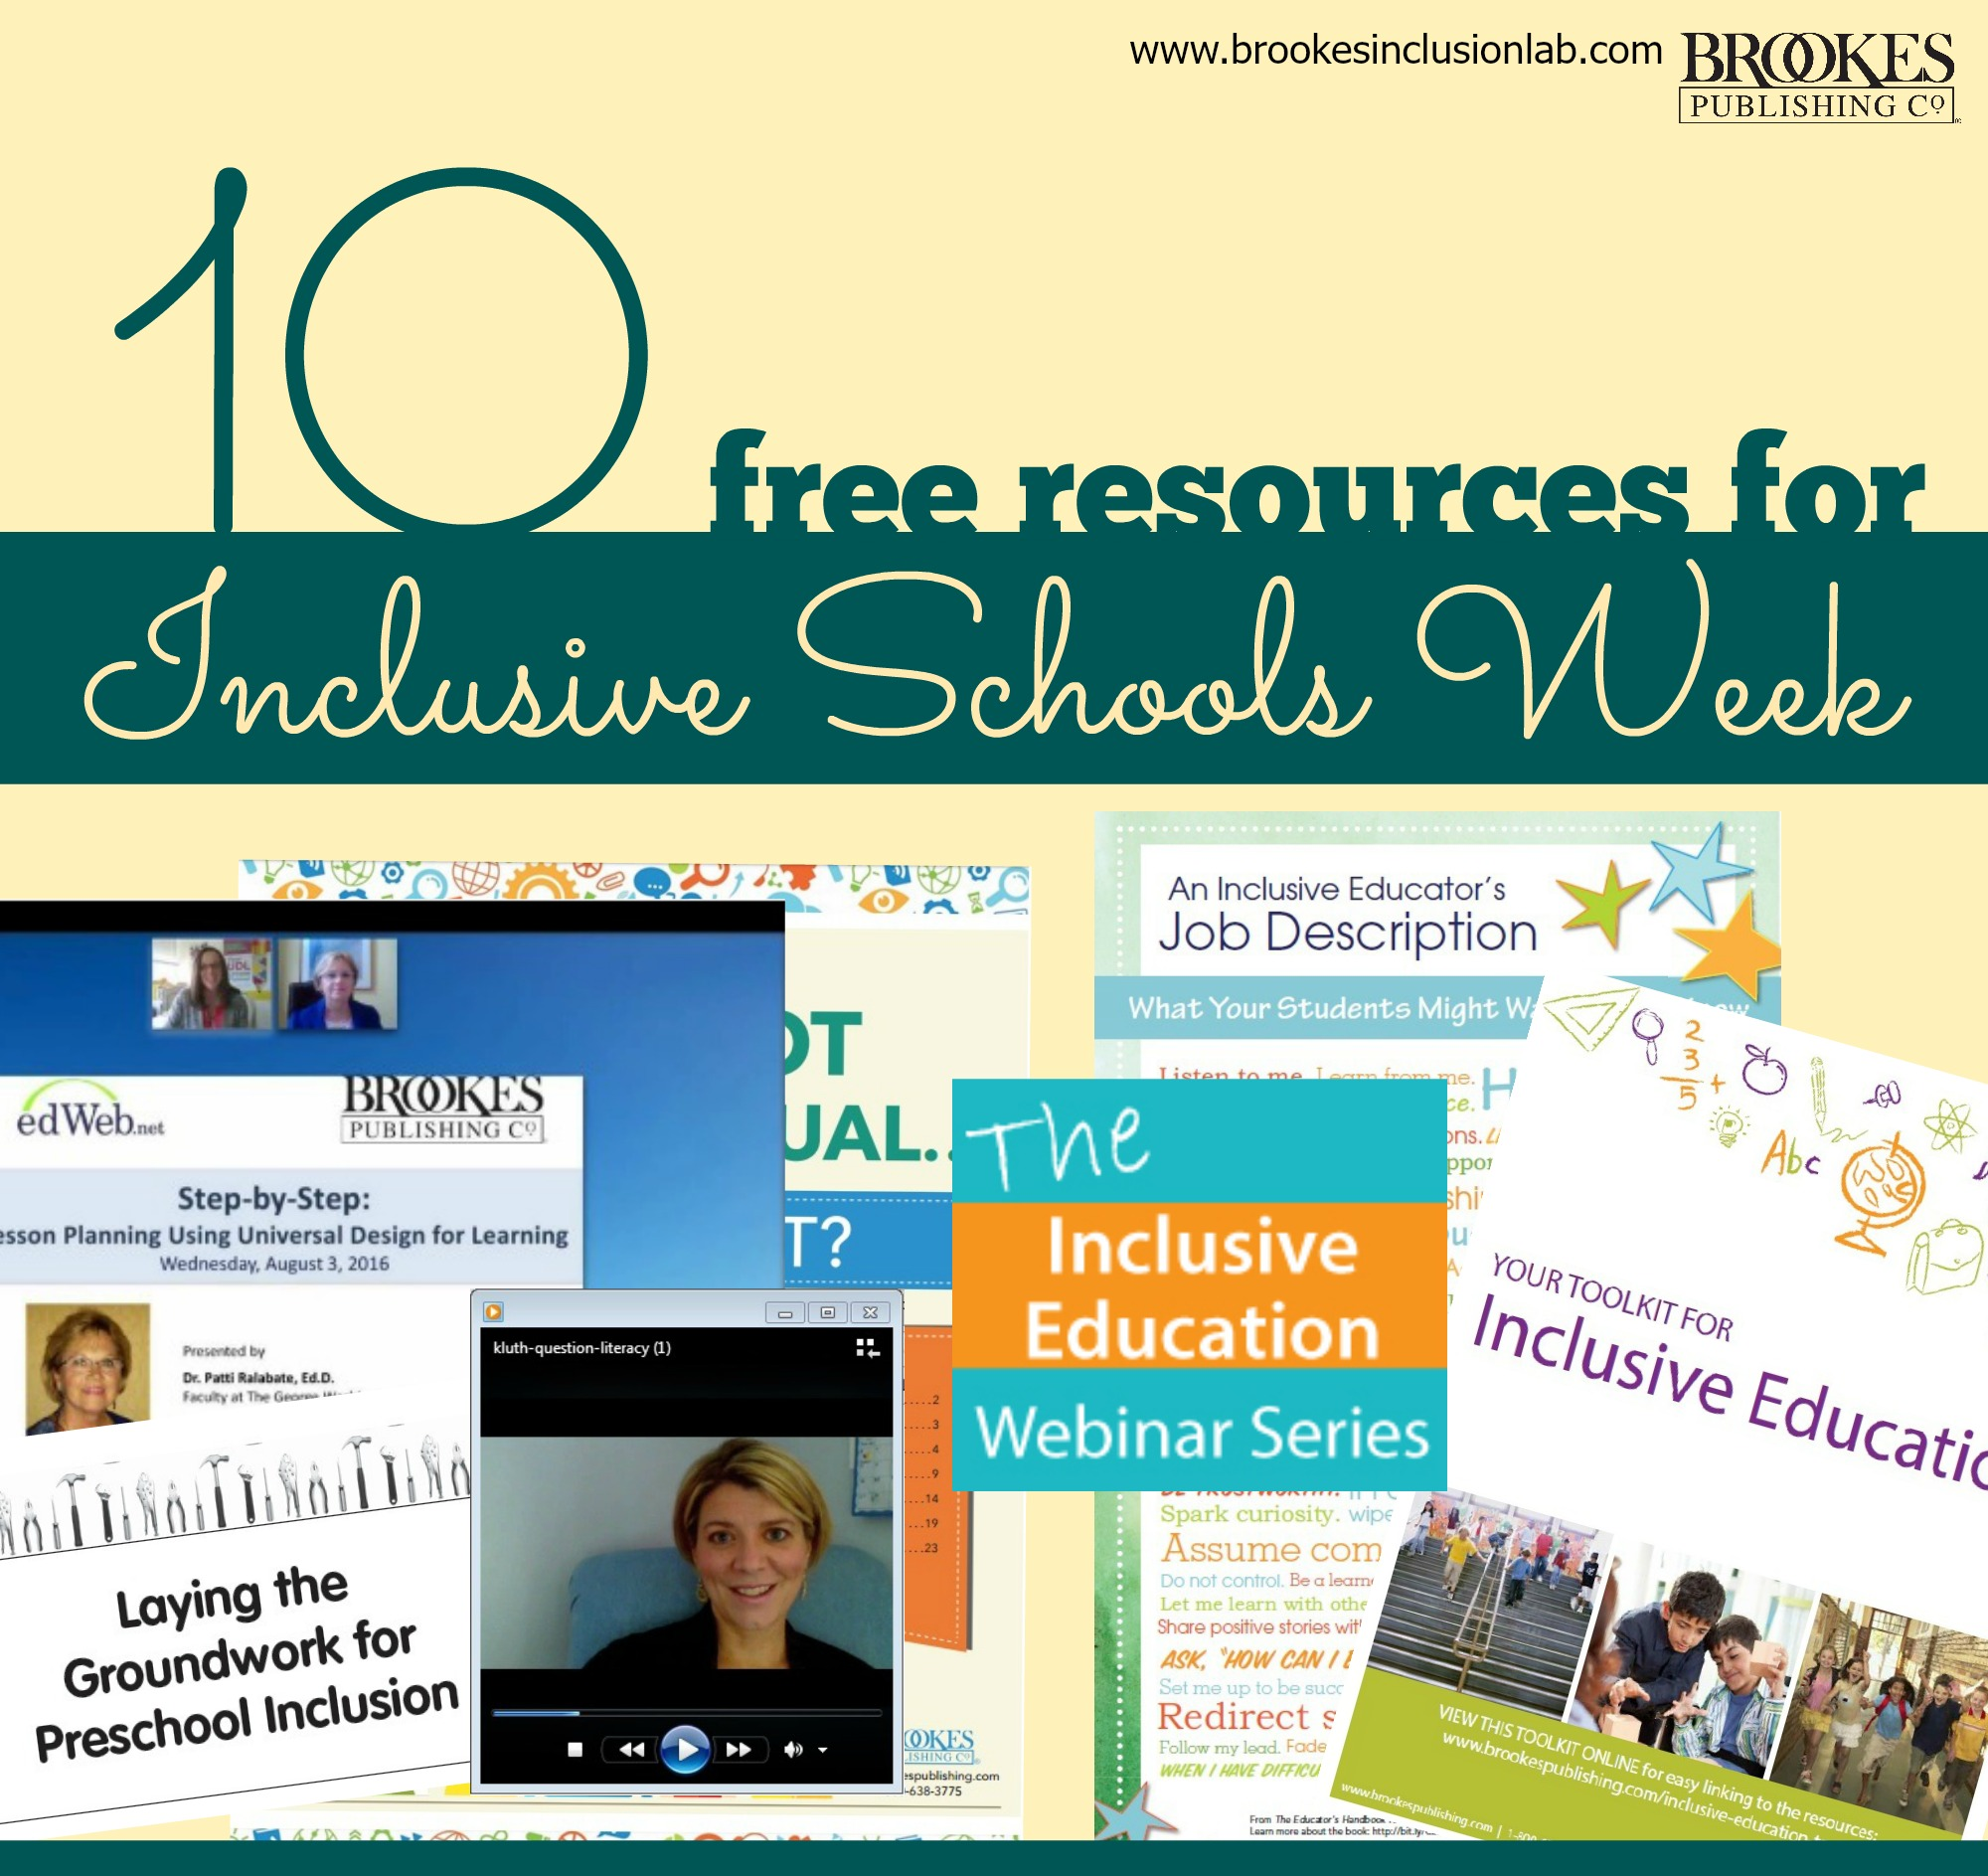 Our Top 10 Free Resources for Inclusive Schools Week (+ Signed Book Giveaway!)